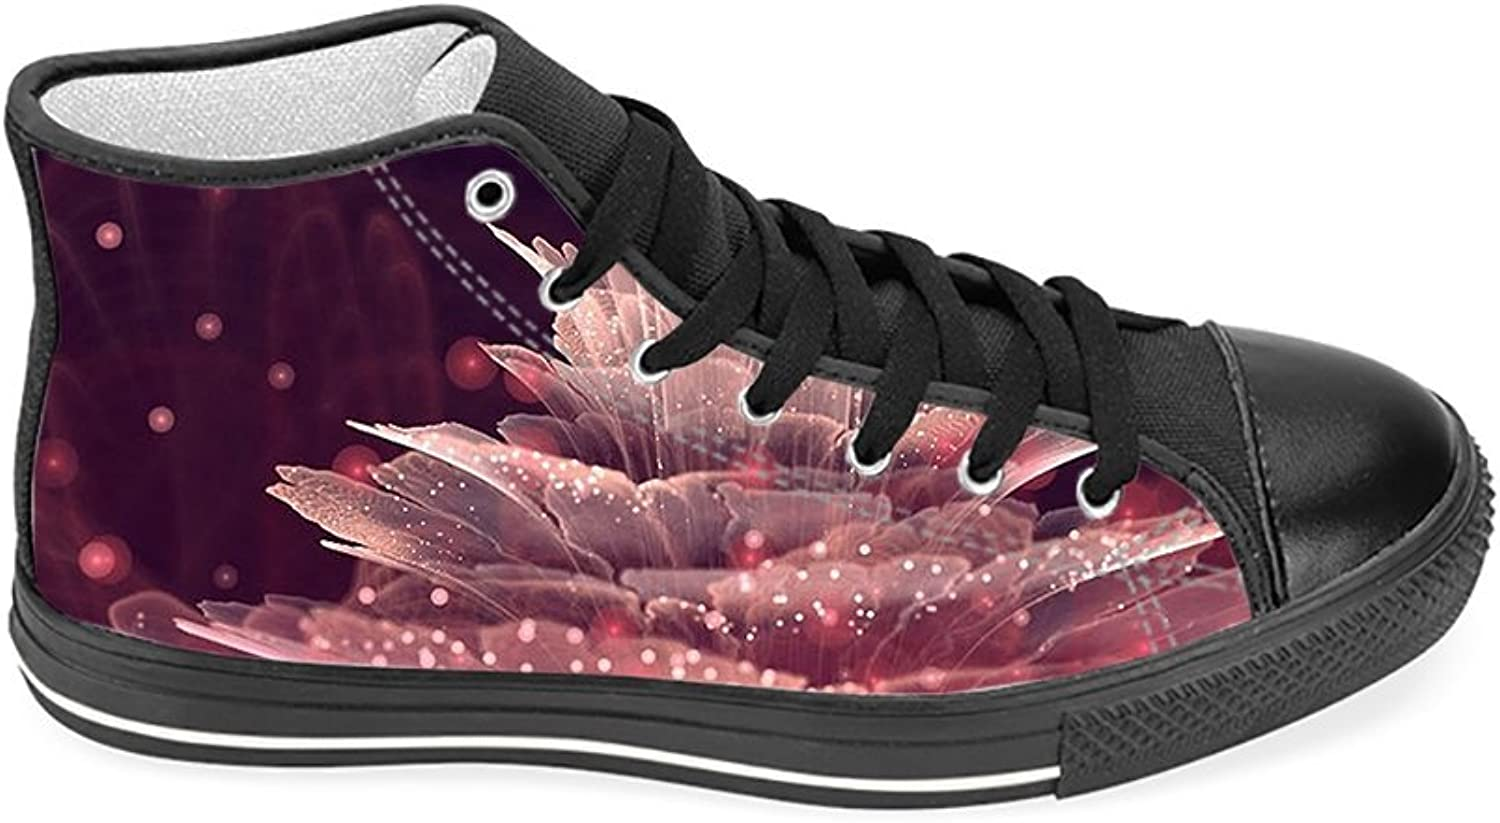 High Top Canvas shoes for Women, Floral High Top Classic Sneakers Men, Printed shoes for Men